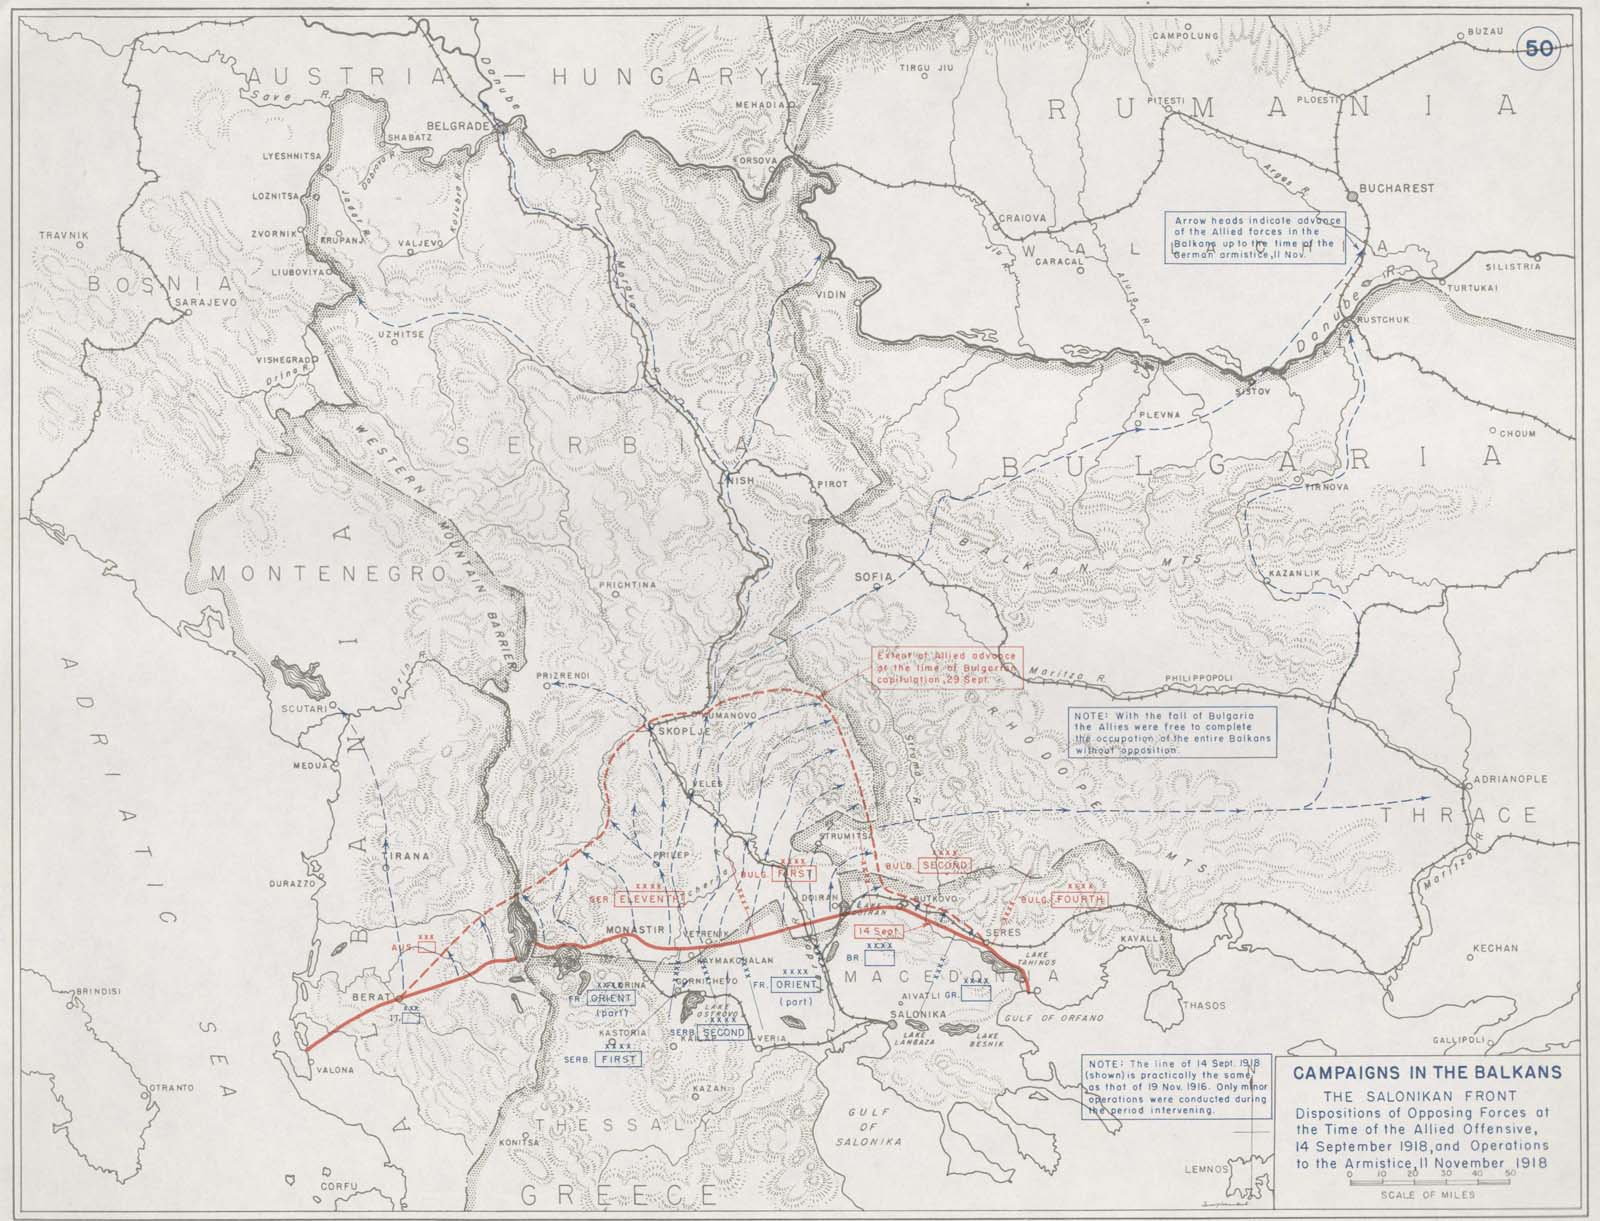 Ww1 Macedonian Campaign Part 1 Road To Prilep